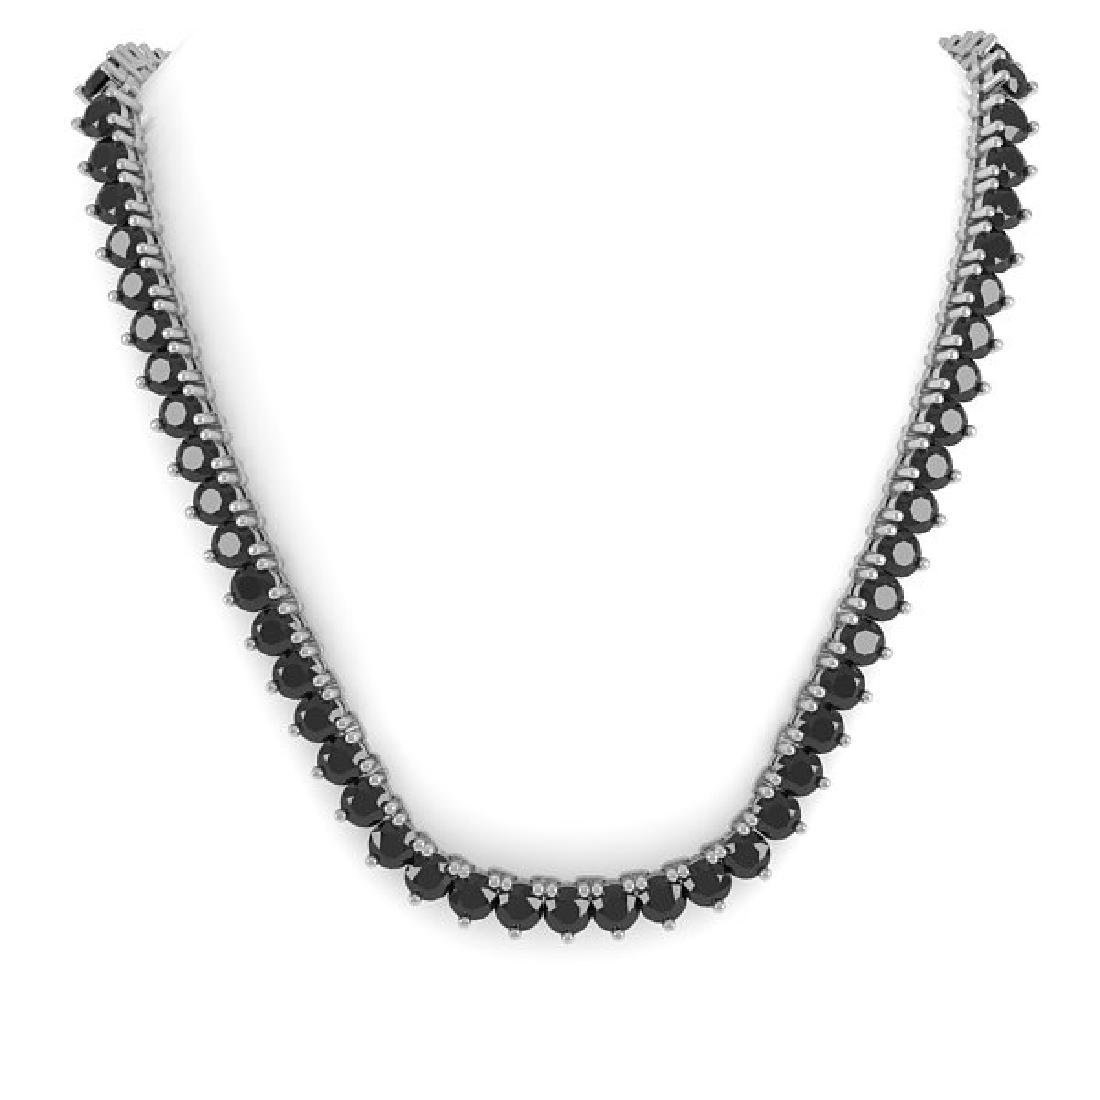 60 CTW Solitaire Certified Black VS Diamond Necklace - 3